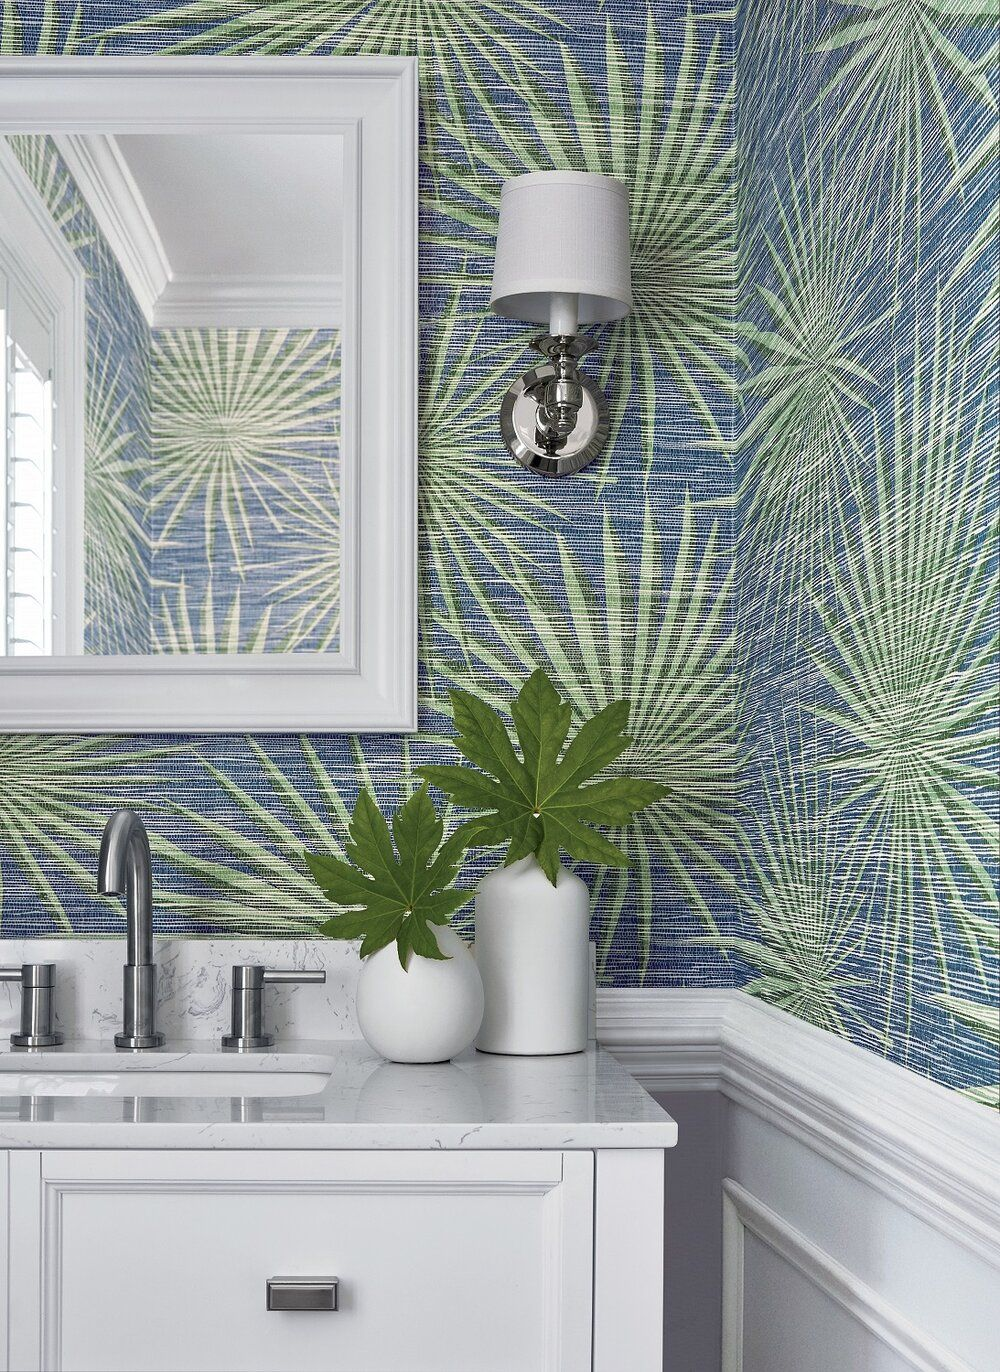 Powder Rooms Are The Ideal Spot For Pattern And Color And